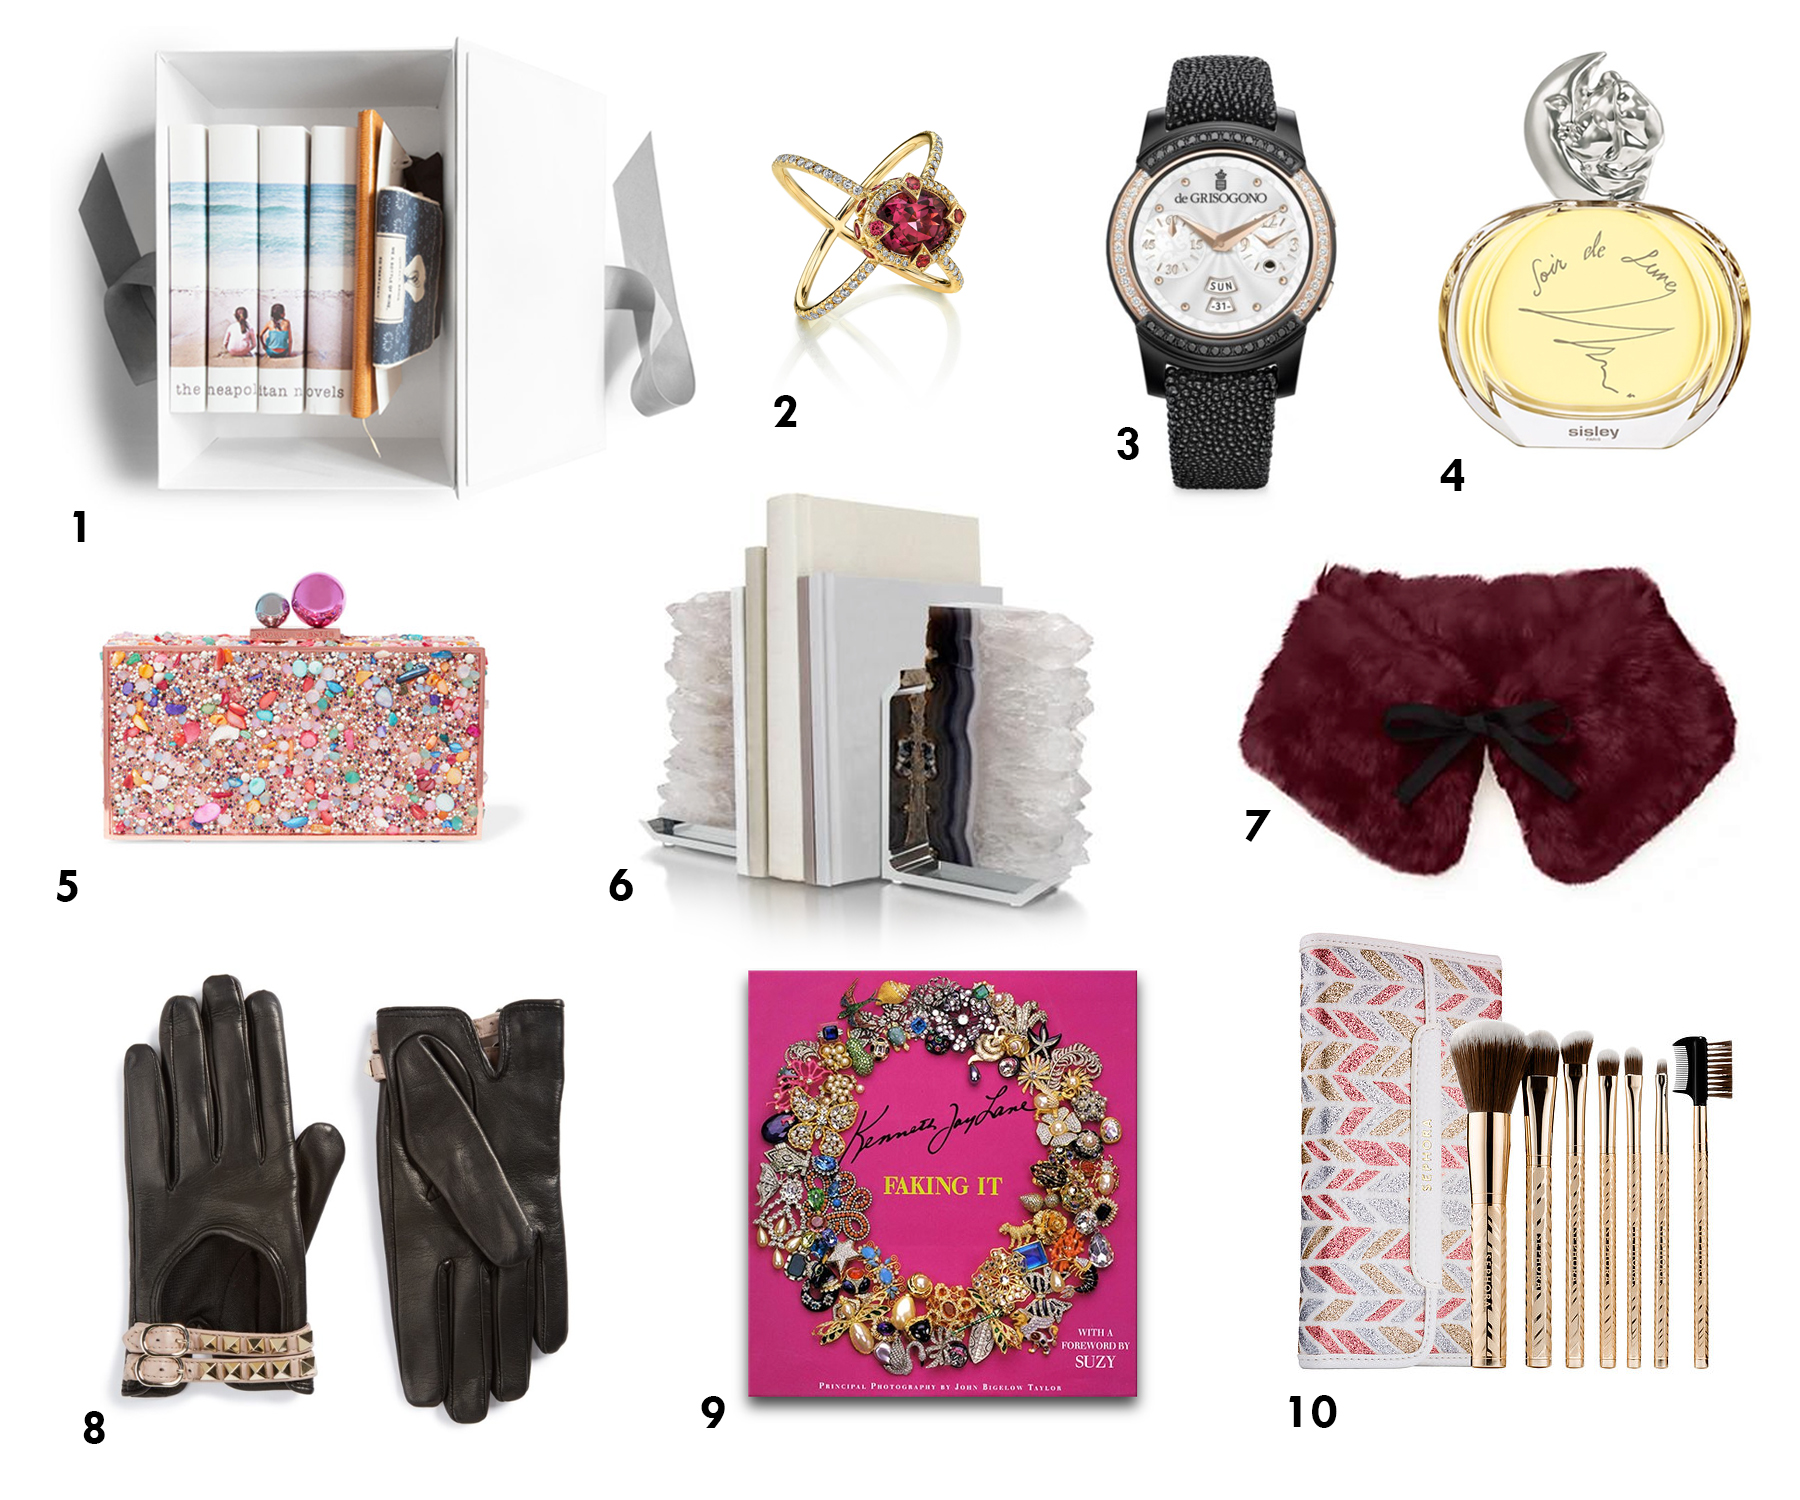 Holiday Gift Guide C'est La VIE 2016 Women